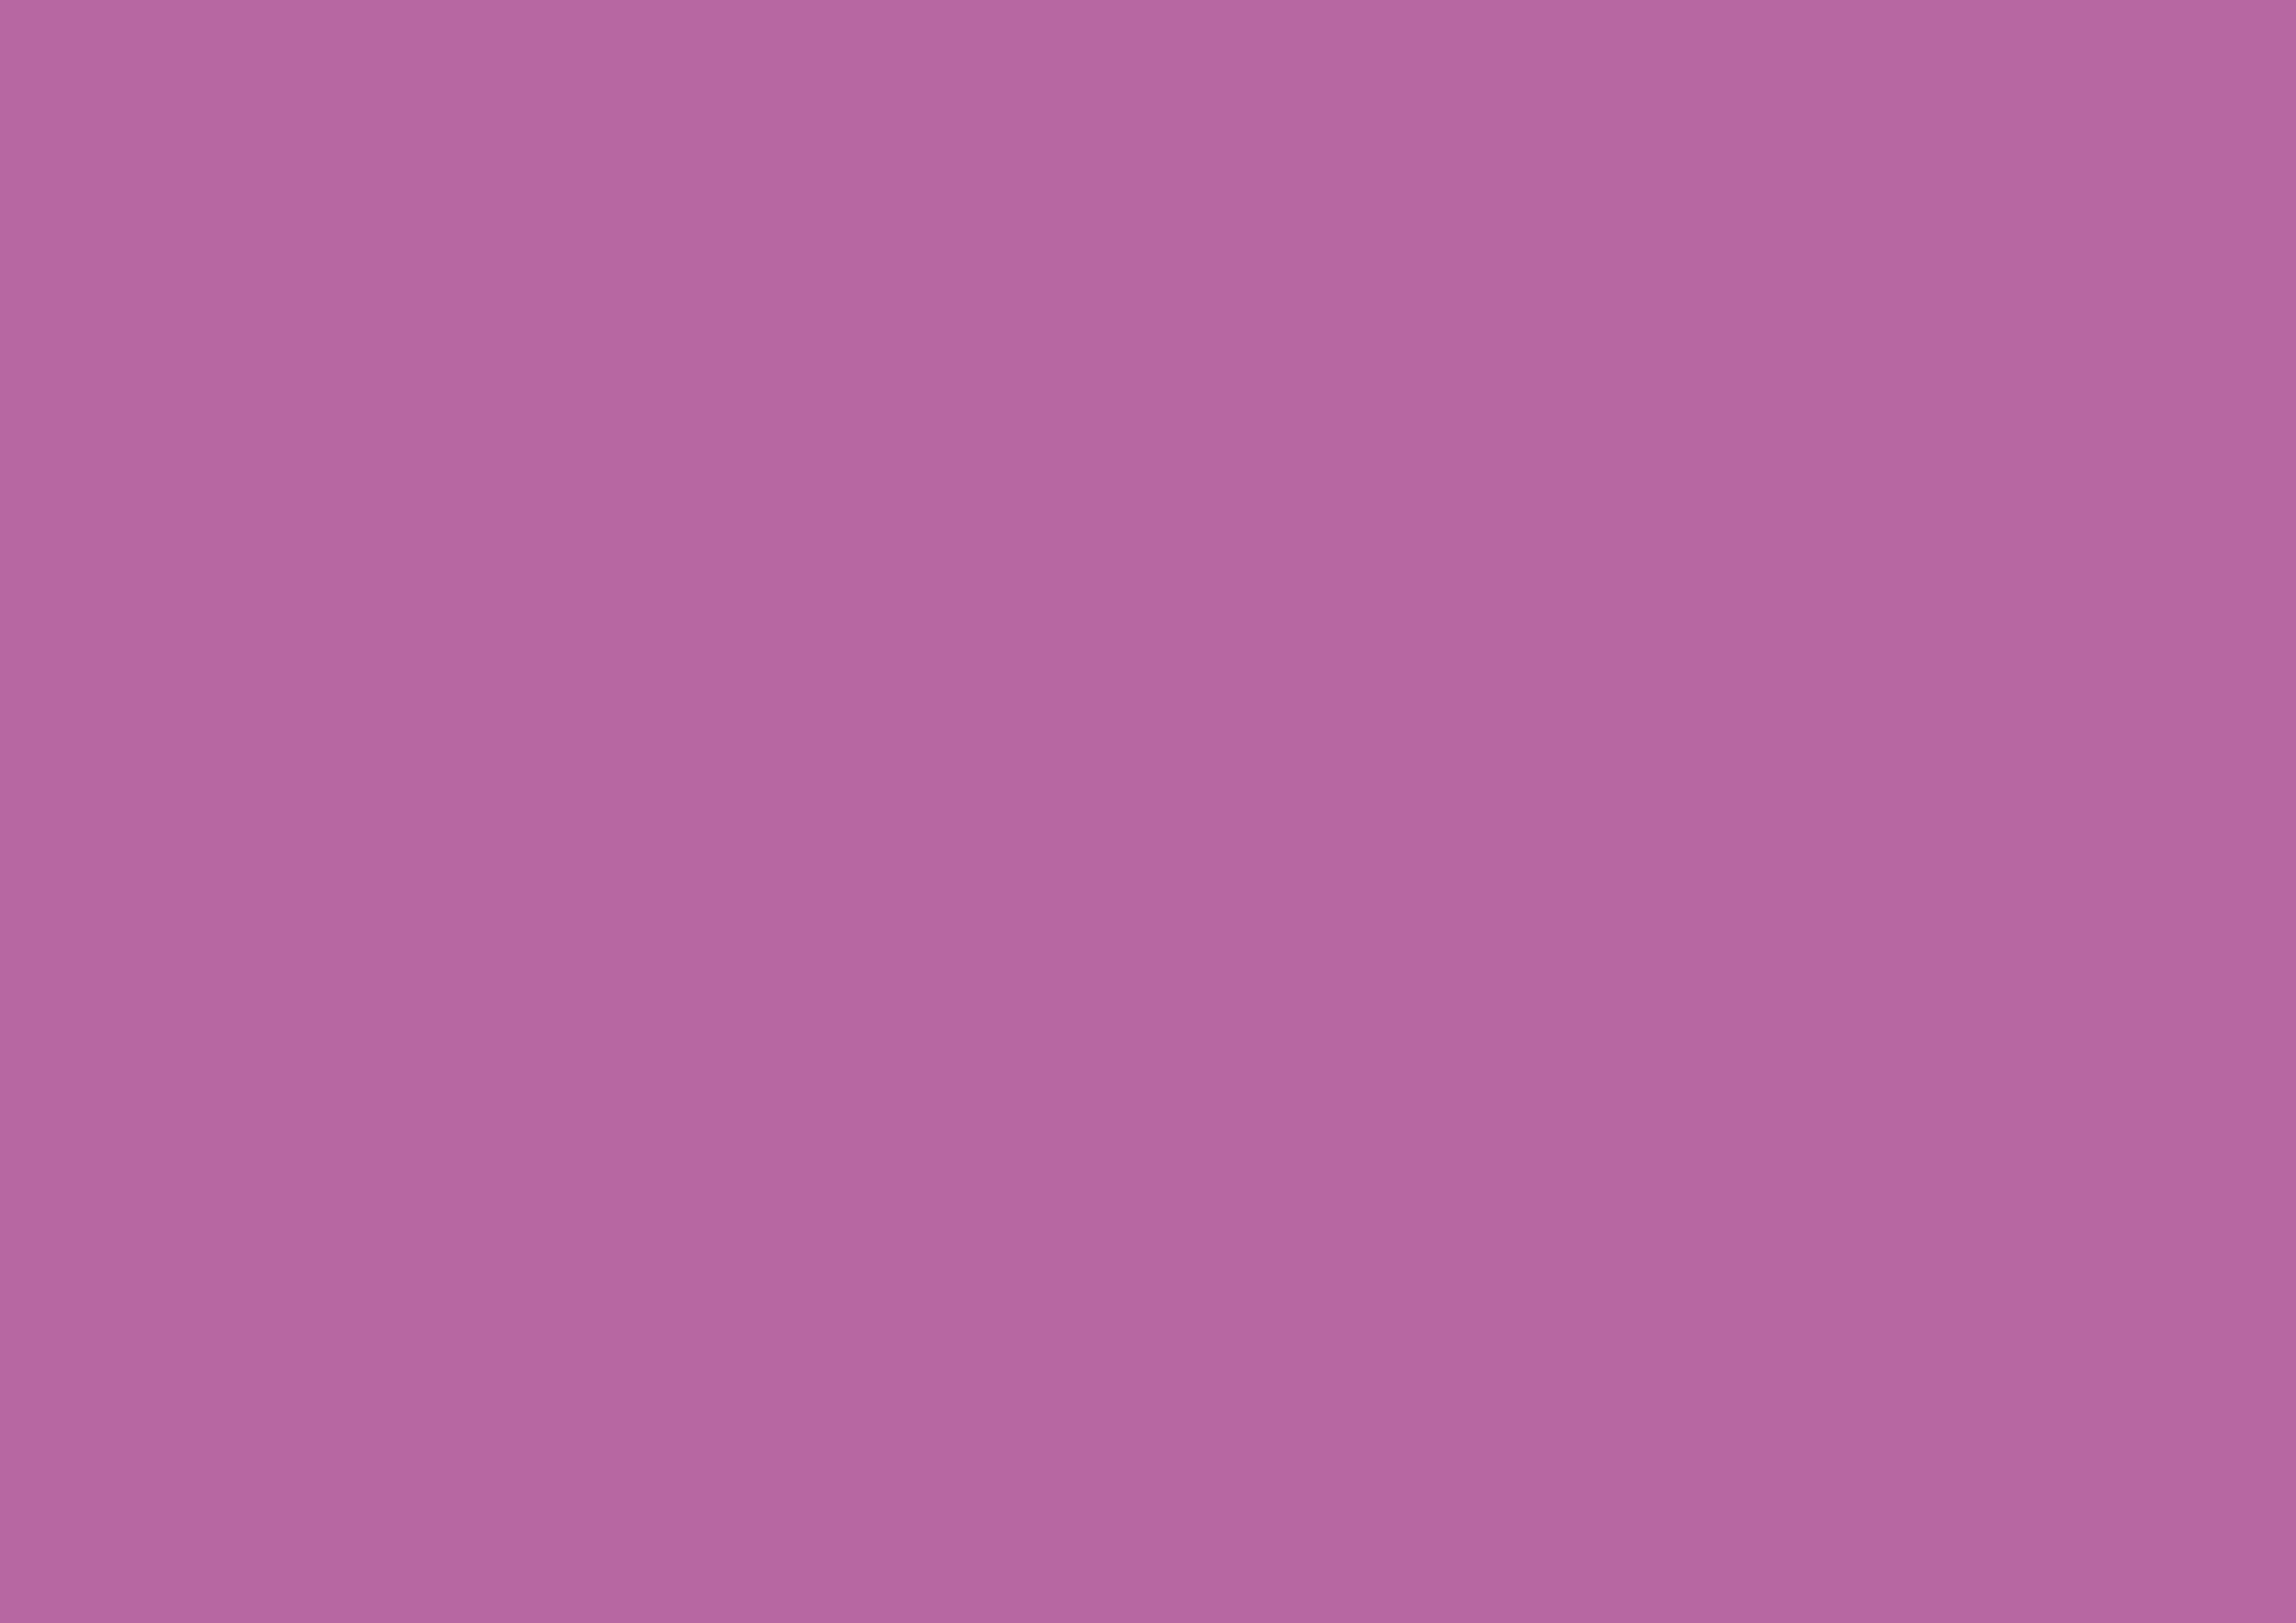 3508x2480 Pearly Purple Solid Color Background